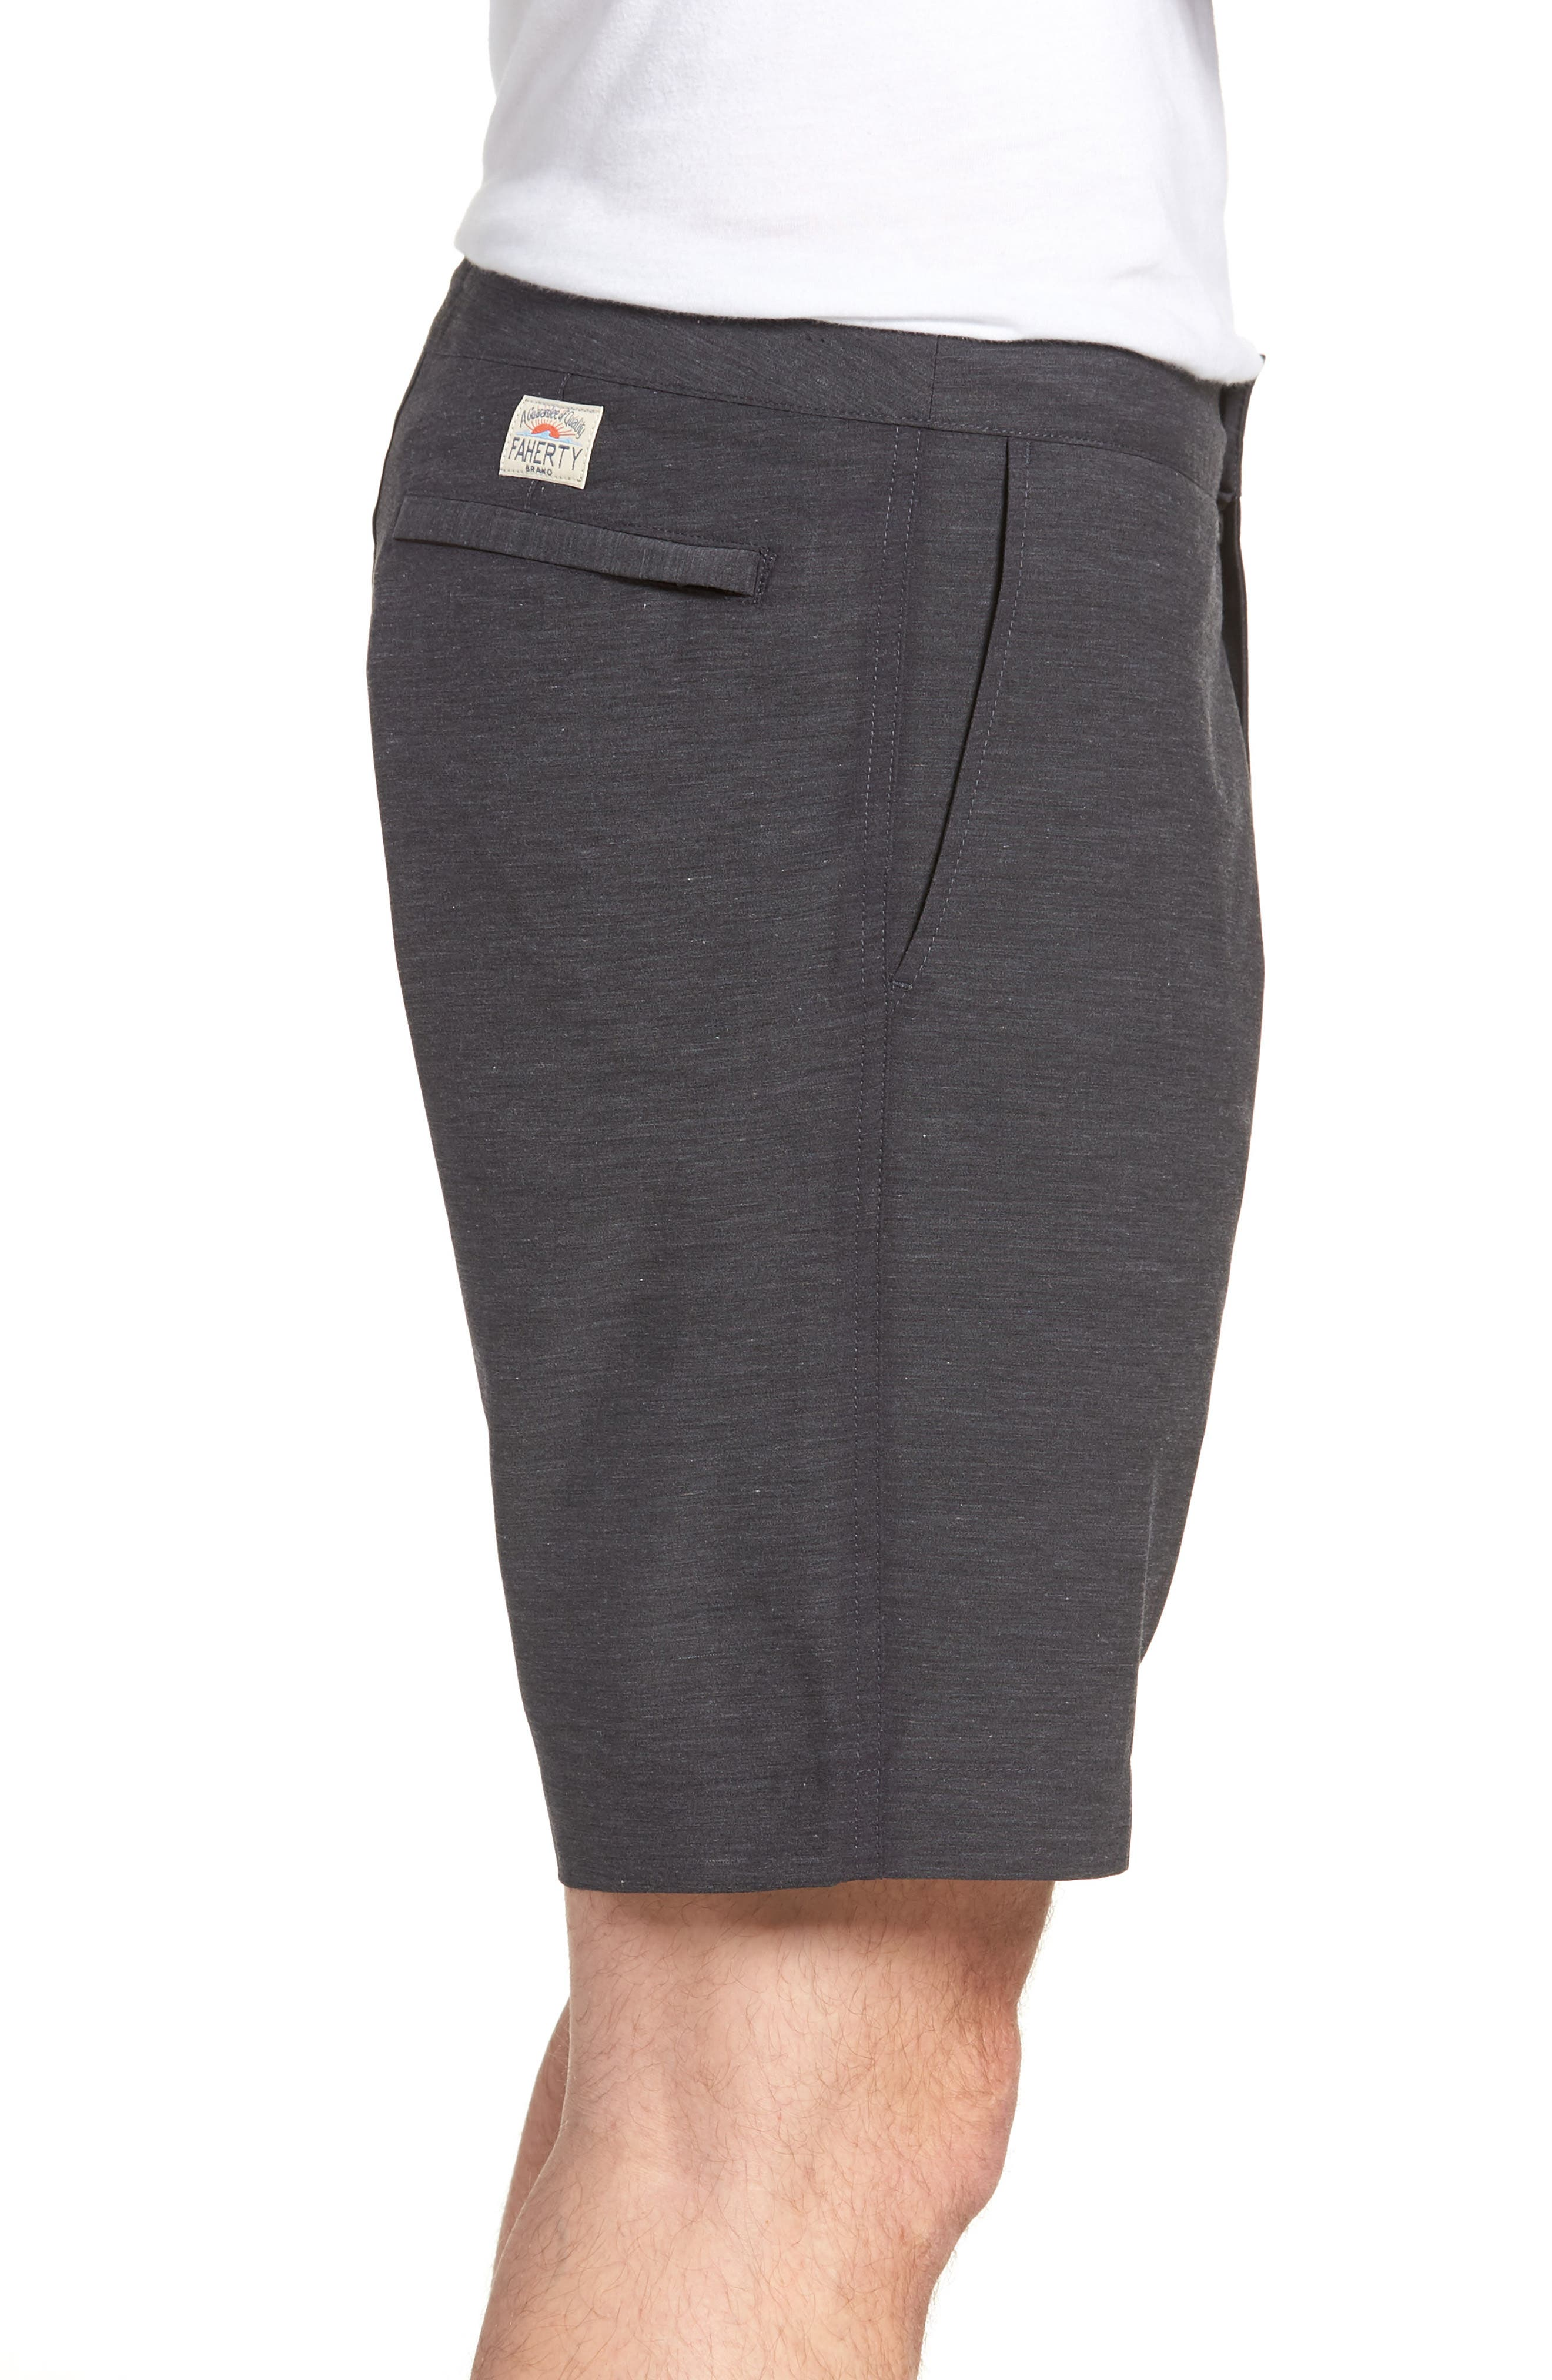 FAHERTY, All Day Flat Front Shorts, Alternate thumbnail 3, color, CHARCOAL